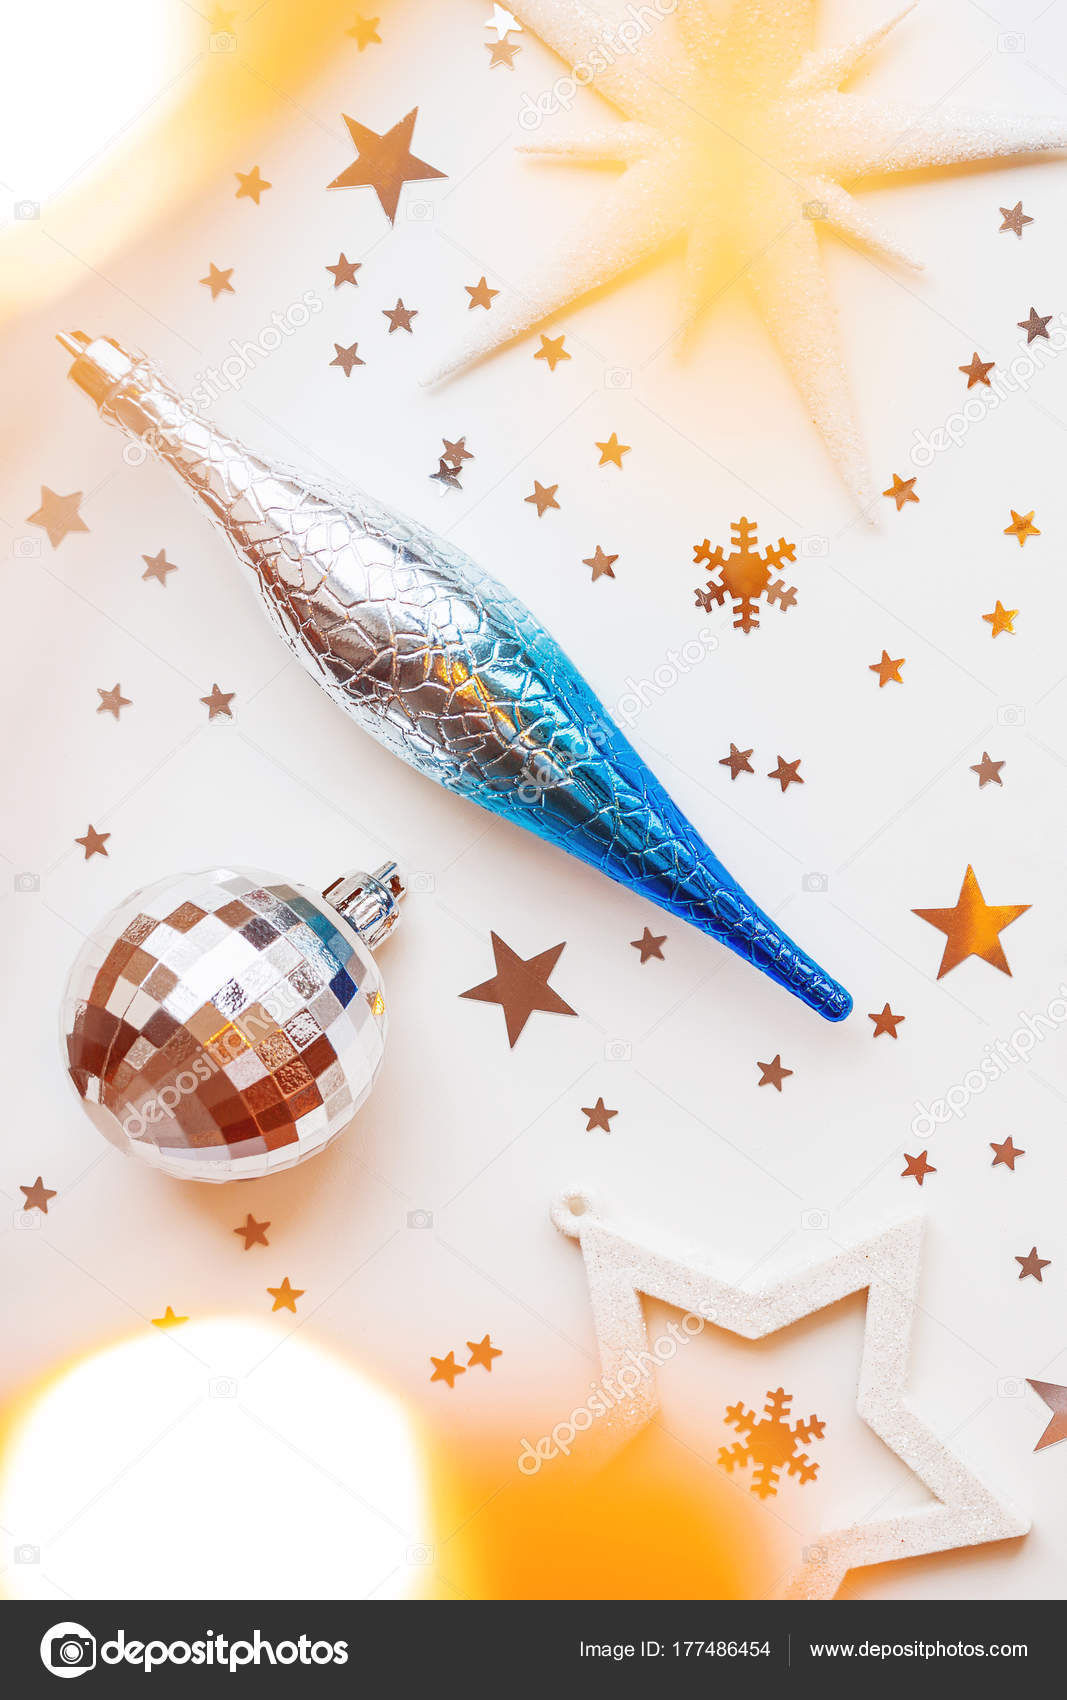 6634da10691b Christmas and New Year holiday background with decorations and light bulbs.  Silver and blue shining ball, white snowflakes and star confetti. Flat lay,  top ...